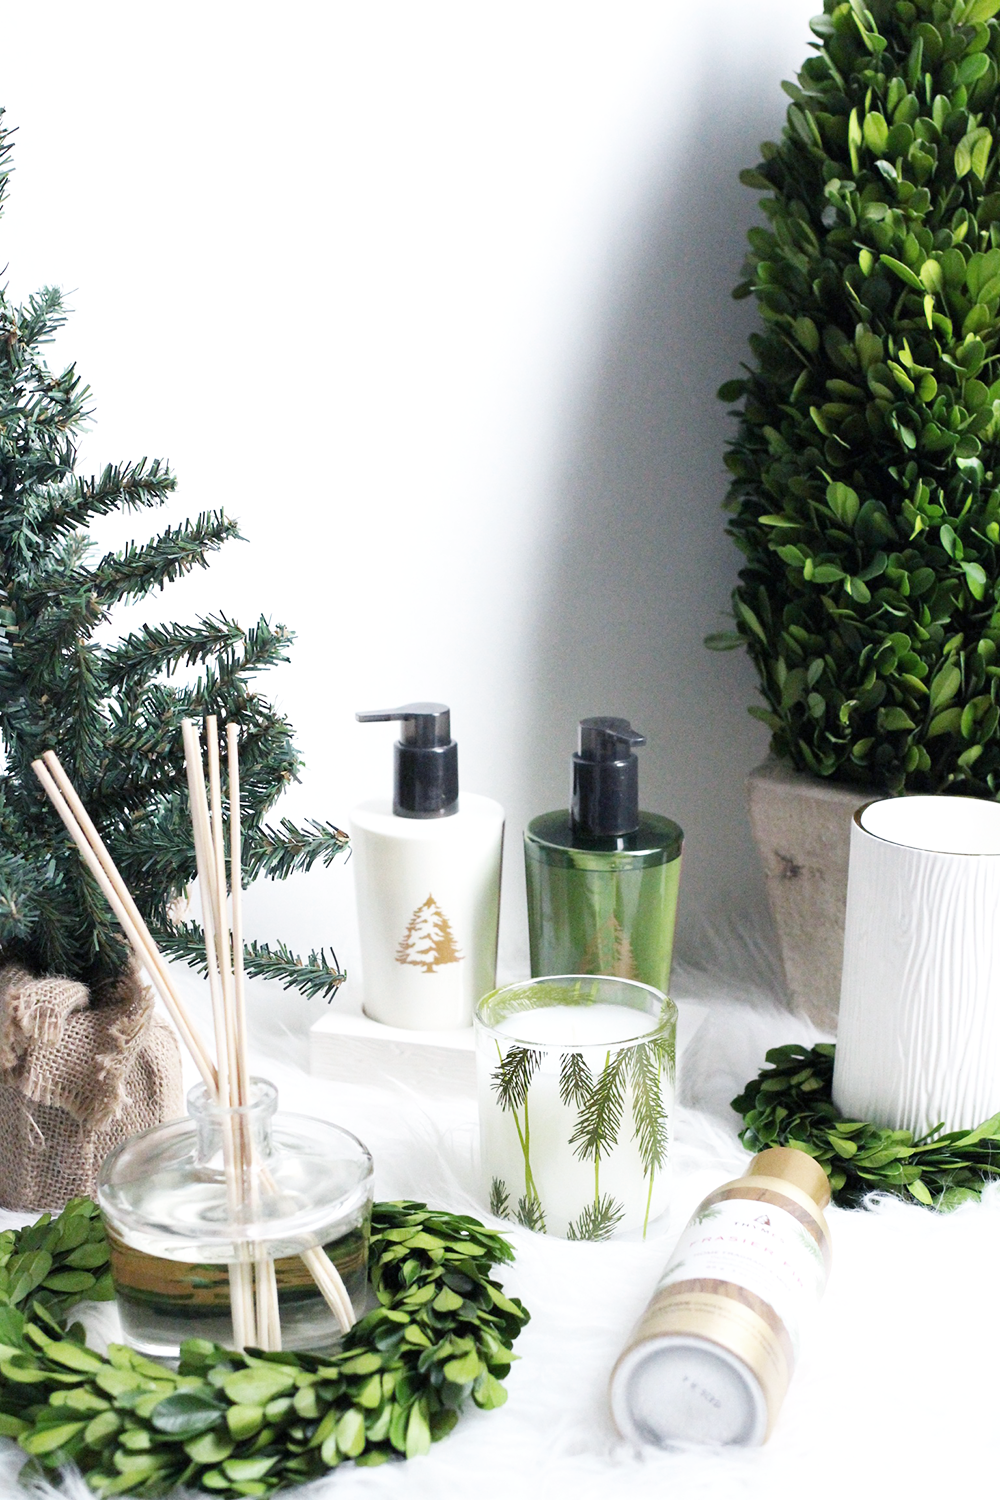 Thymes Holiday Review, Decorating for the Holidays